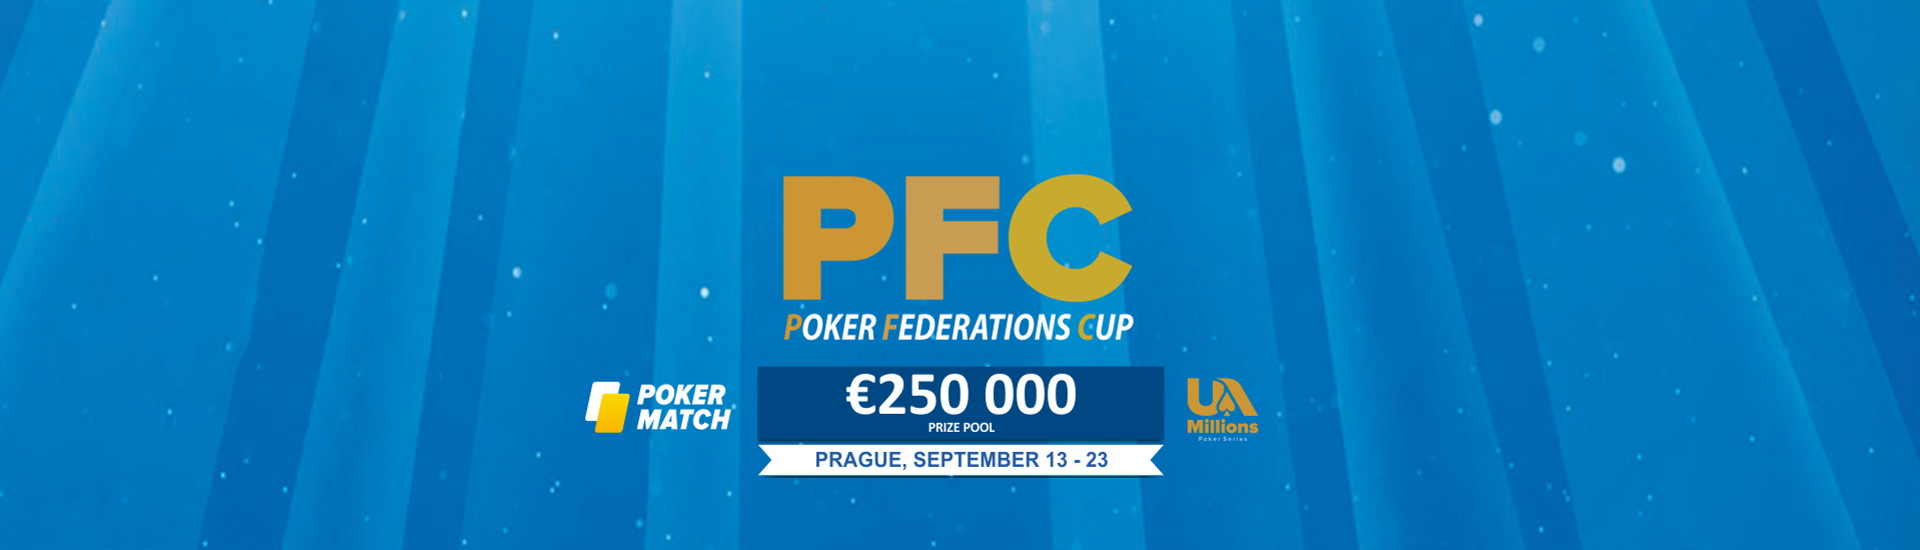 Poker_Federation_Cup_header3